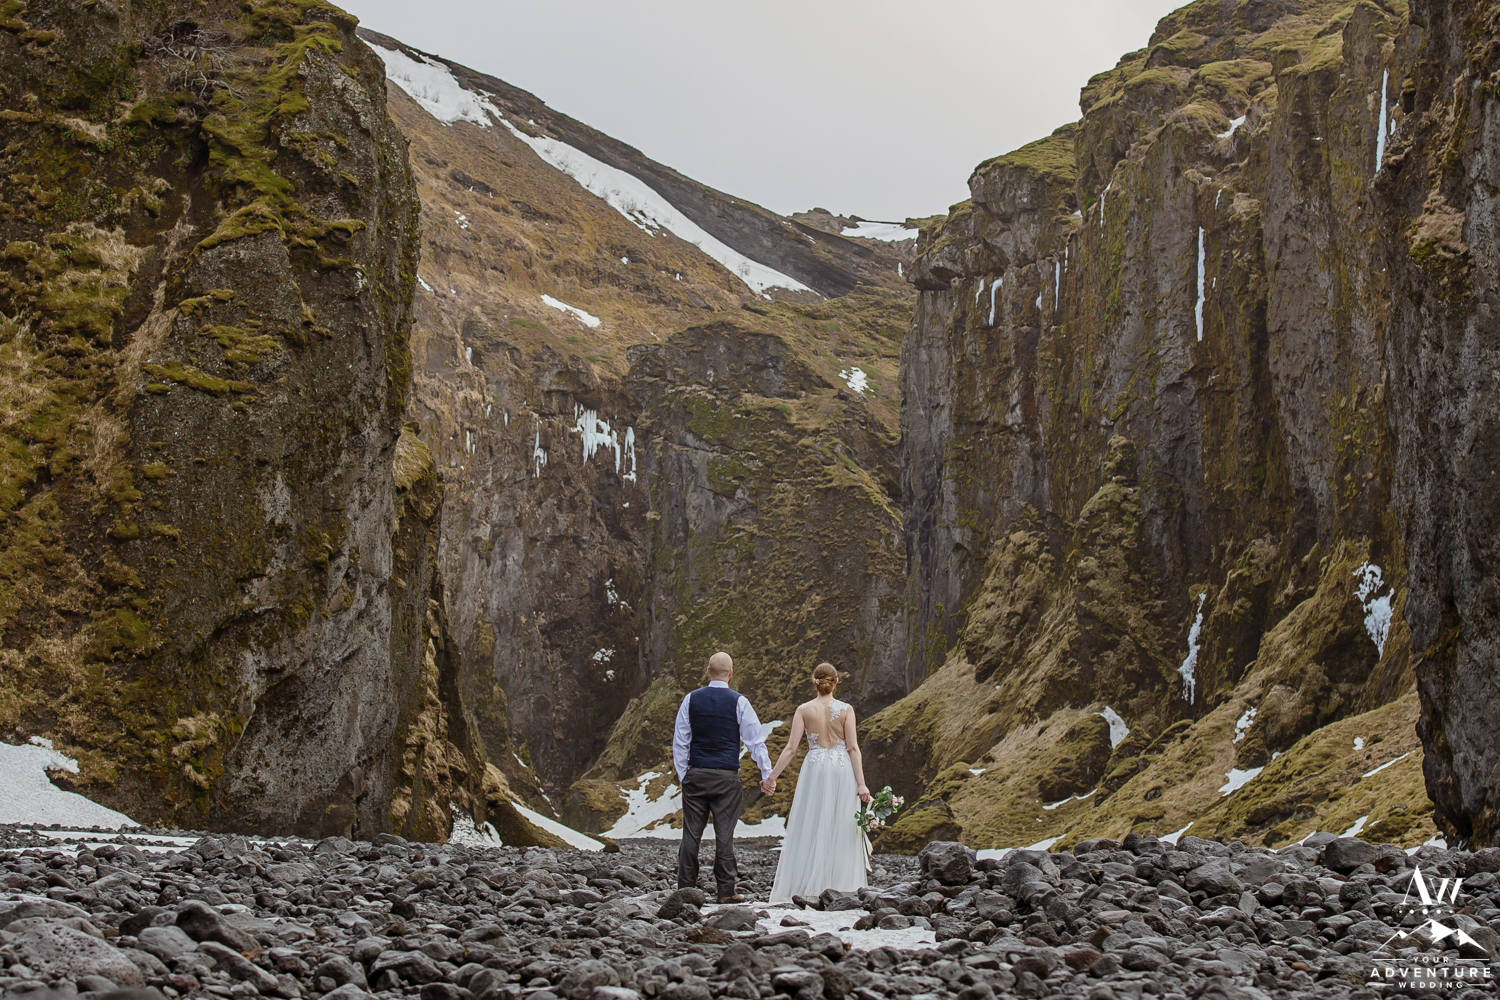 Couple Admiring the Canyon in Iceland during Elopement